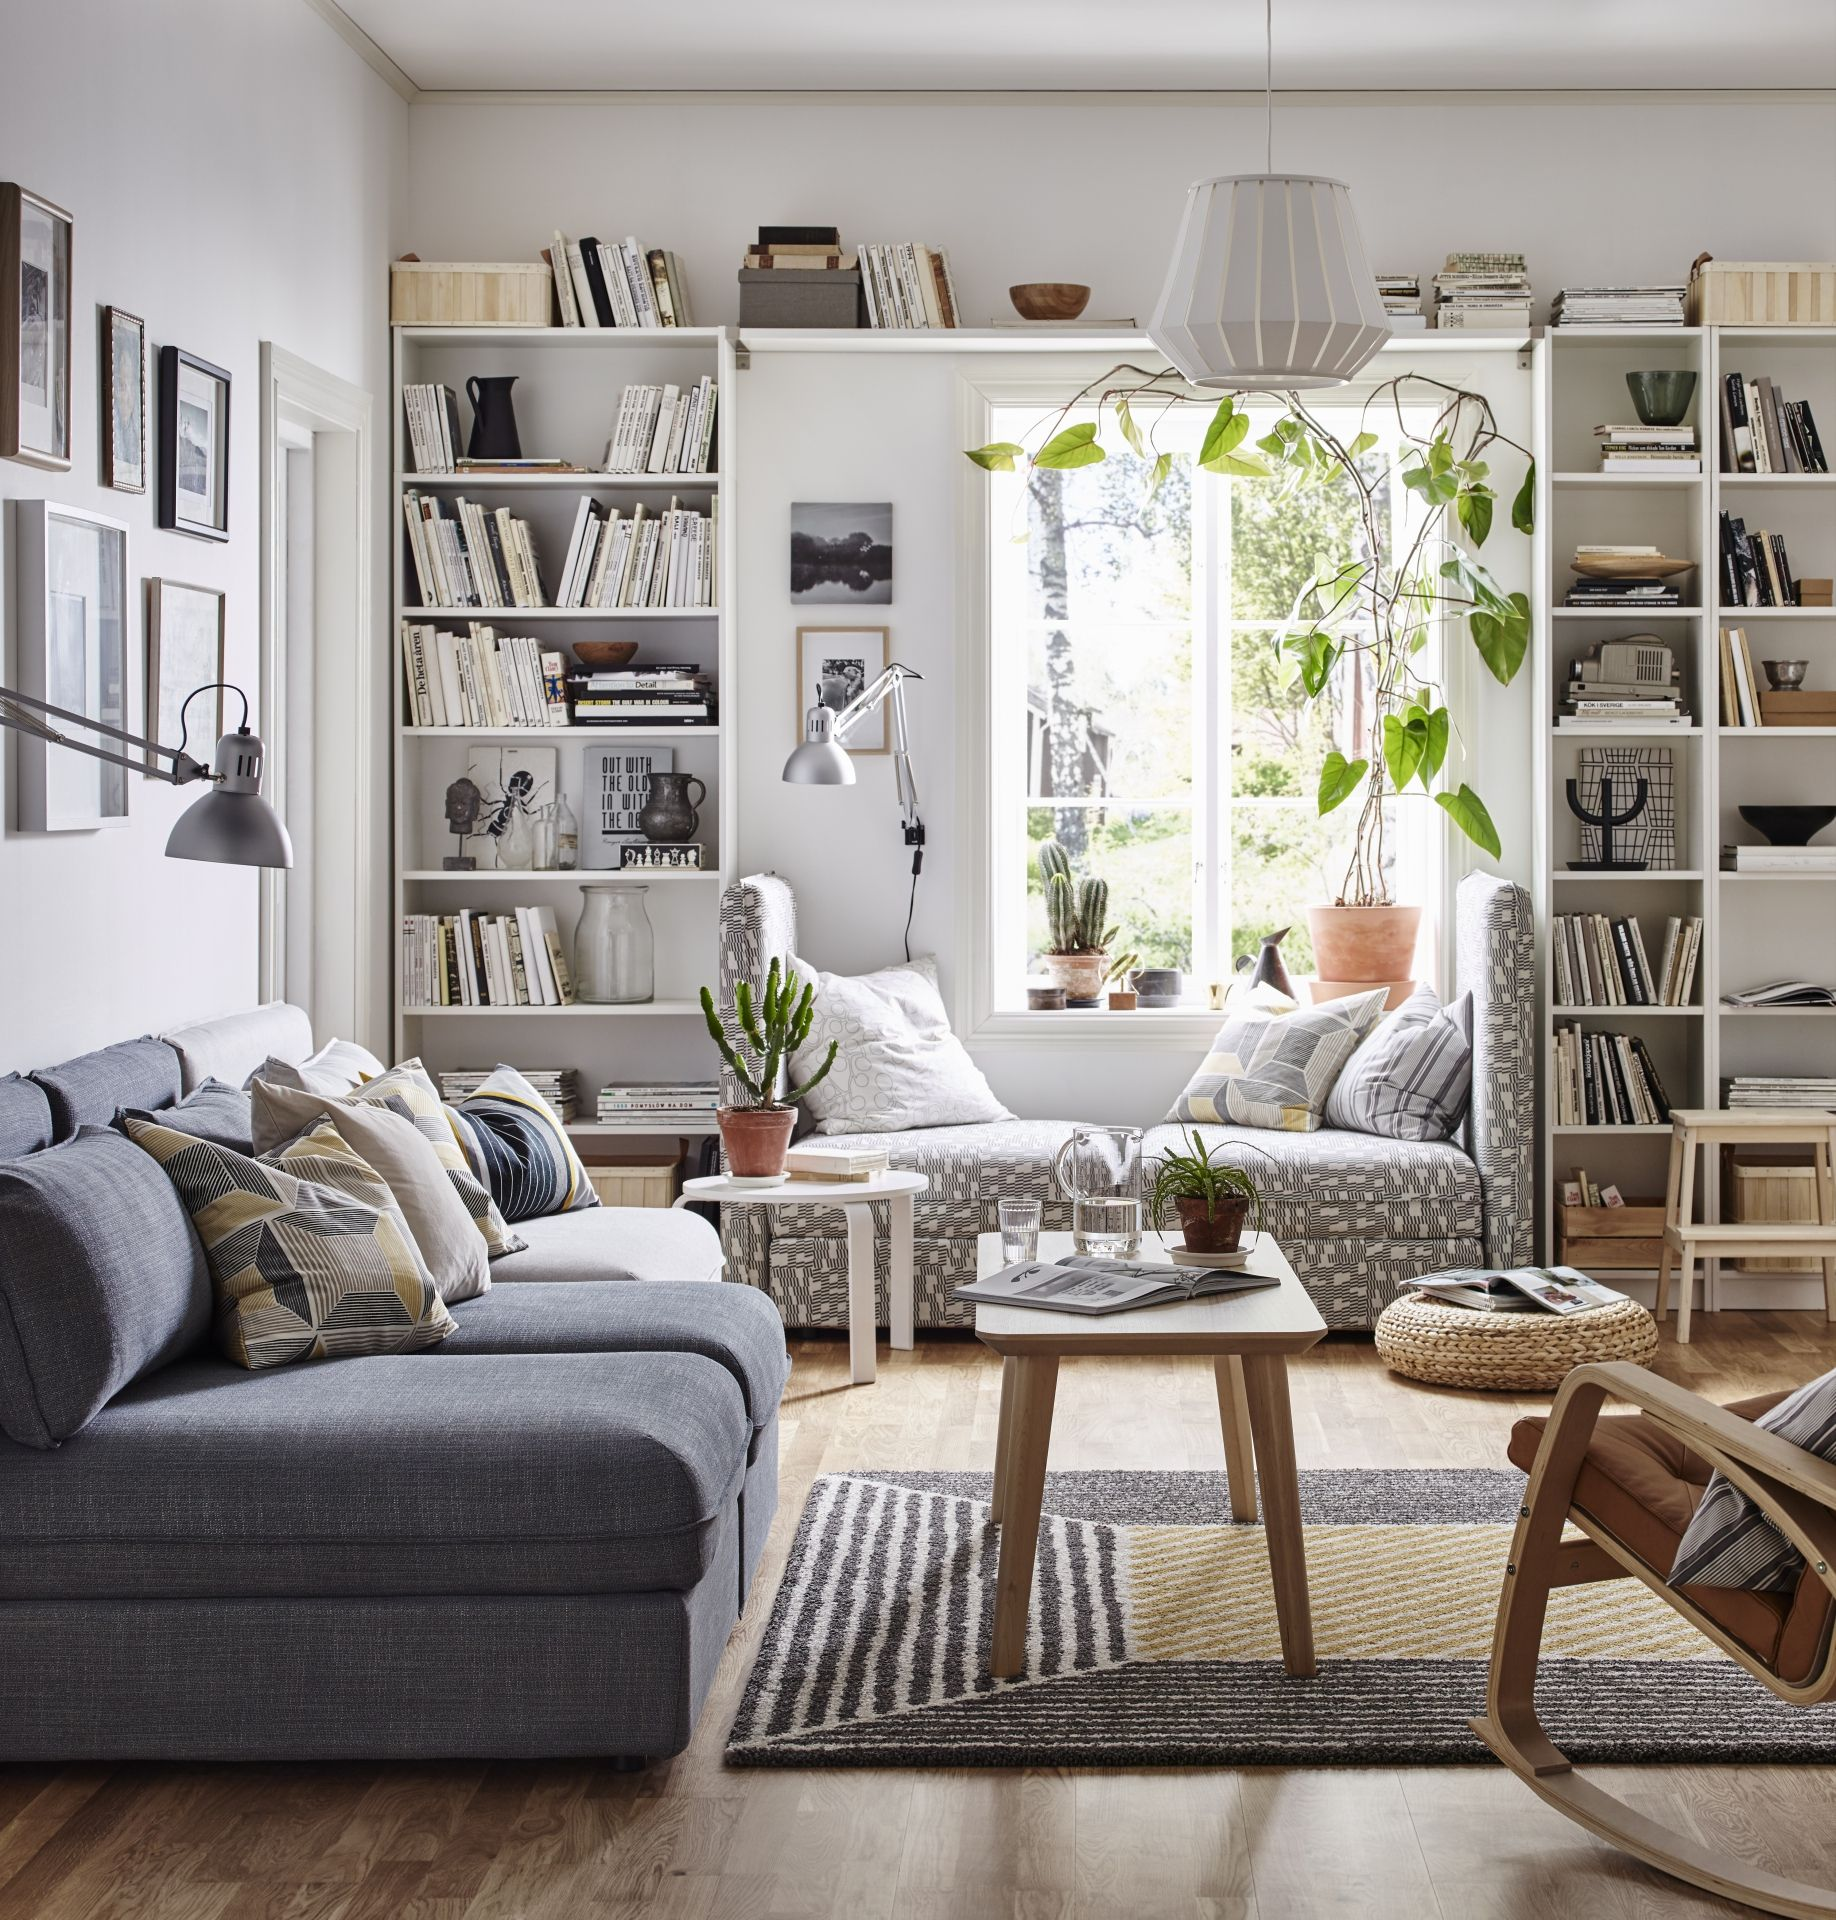 Billy Boekenkast  Ikea Ikeanederland Inspiratie Wooninspiratie Unique Ikea Small Living Room Ideas Inspiration